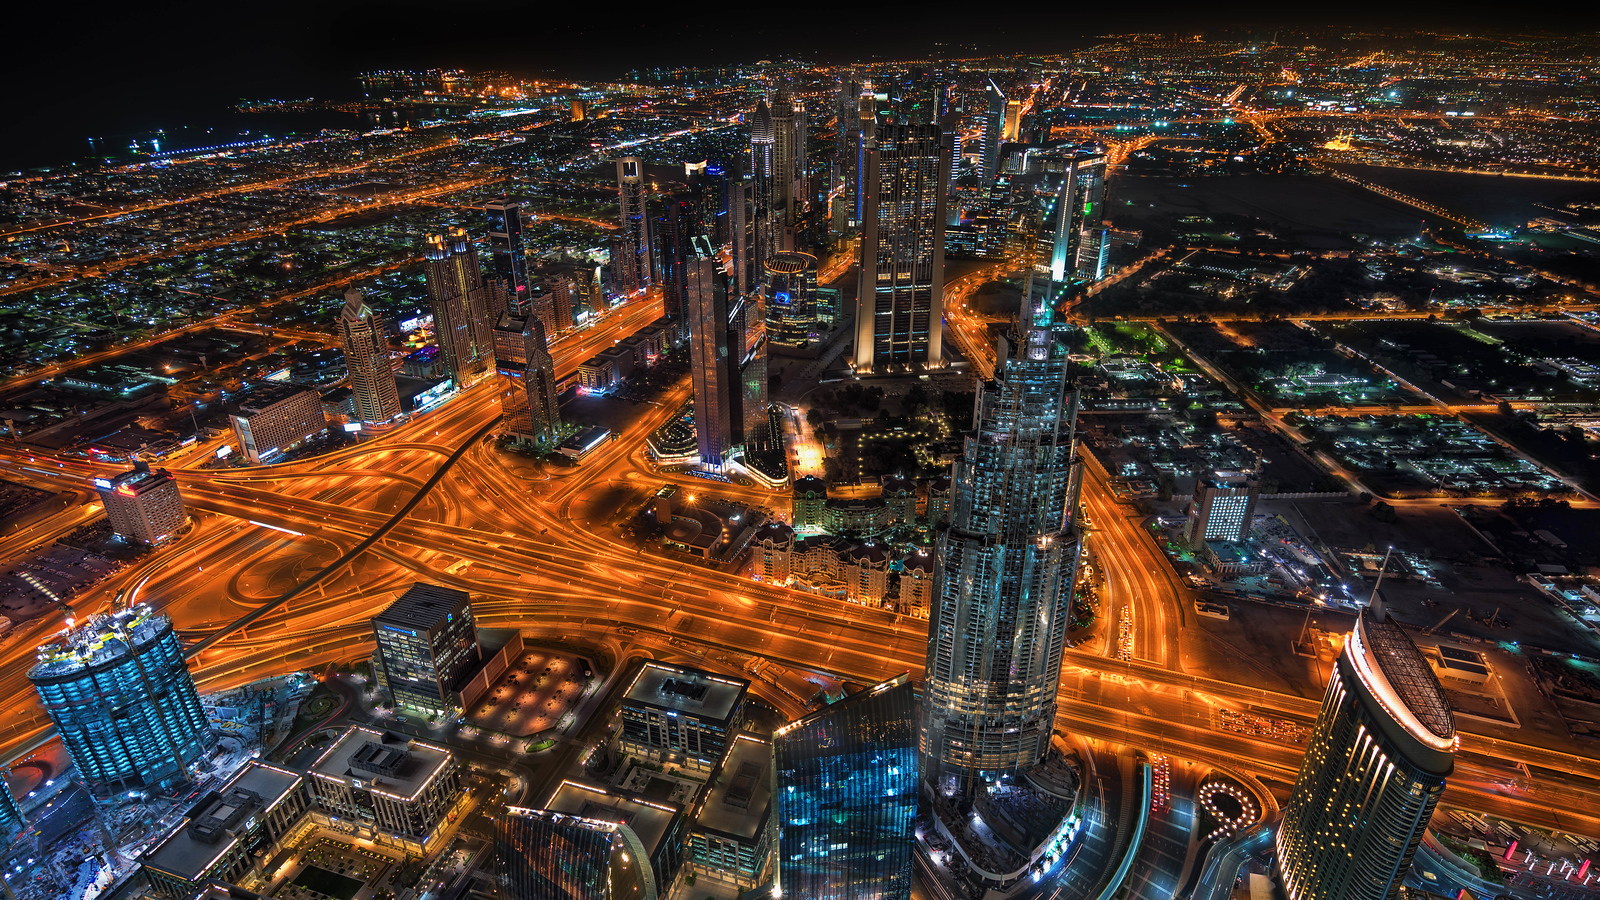 Night over Dubai from the Burj Khalifa